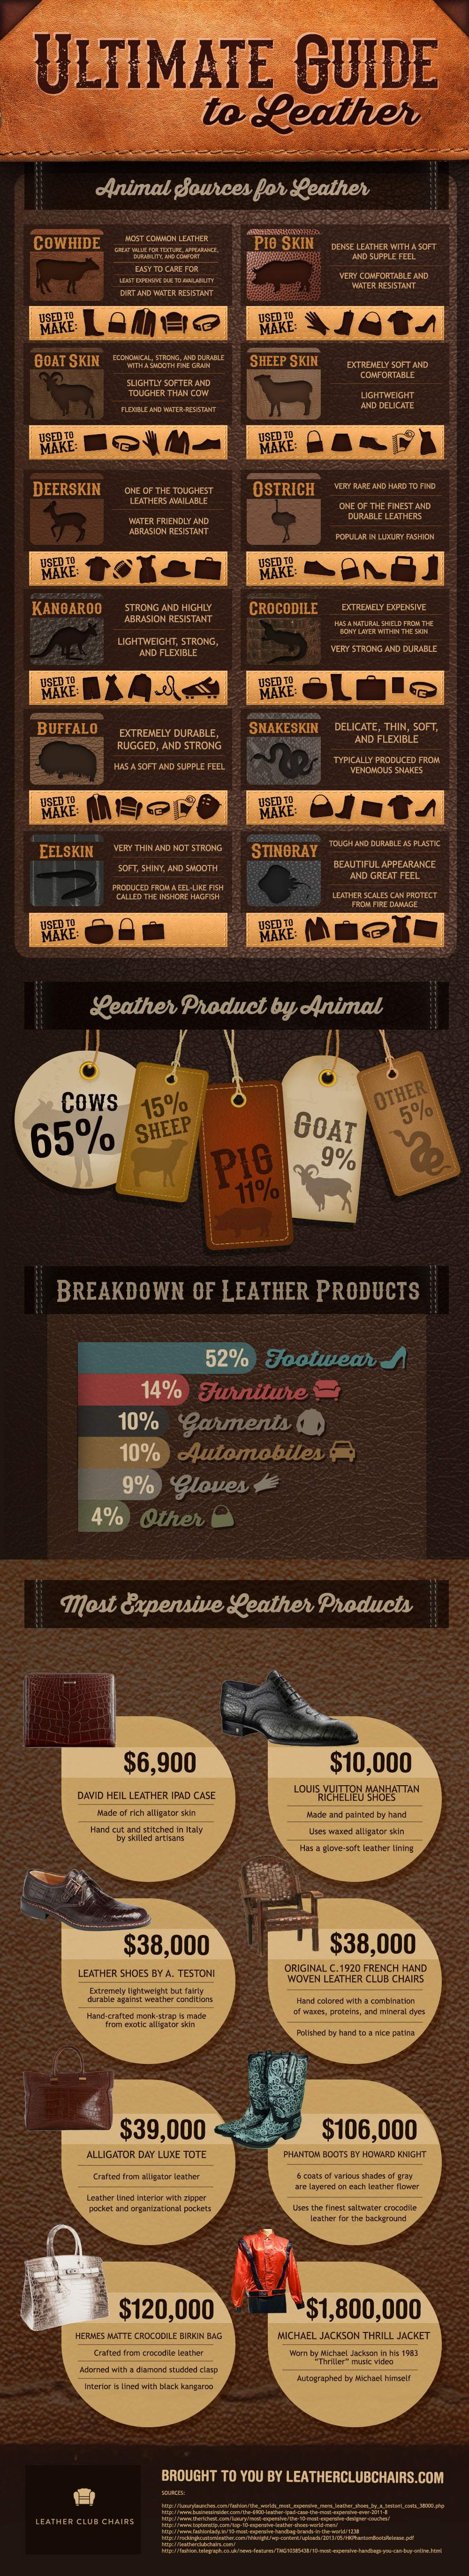 Infographic: Ultimate Guide to Leather #infographic